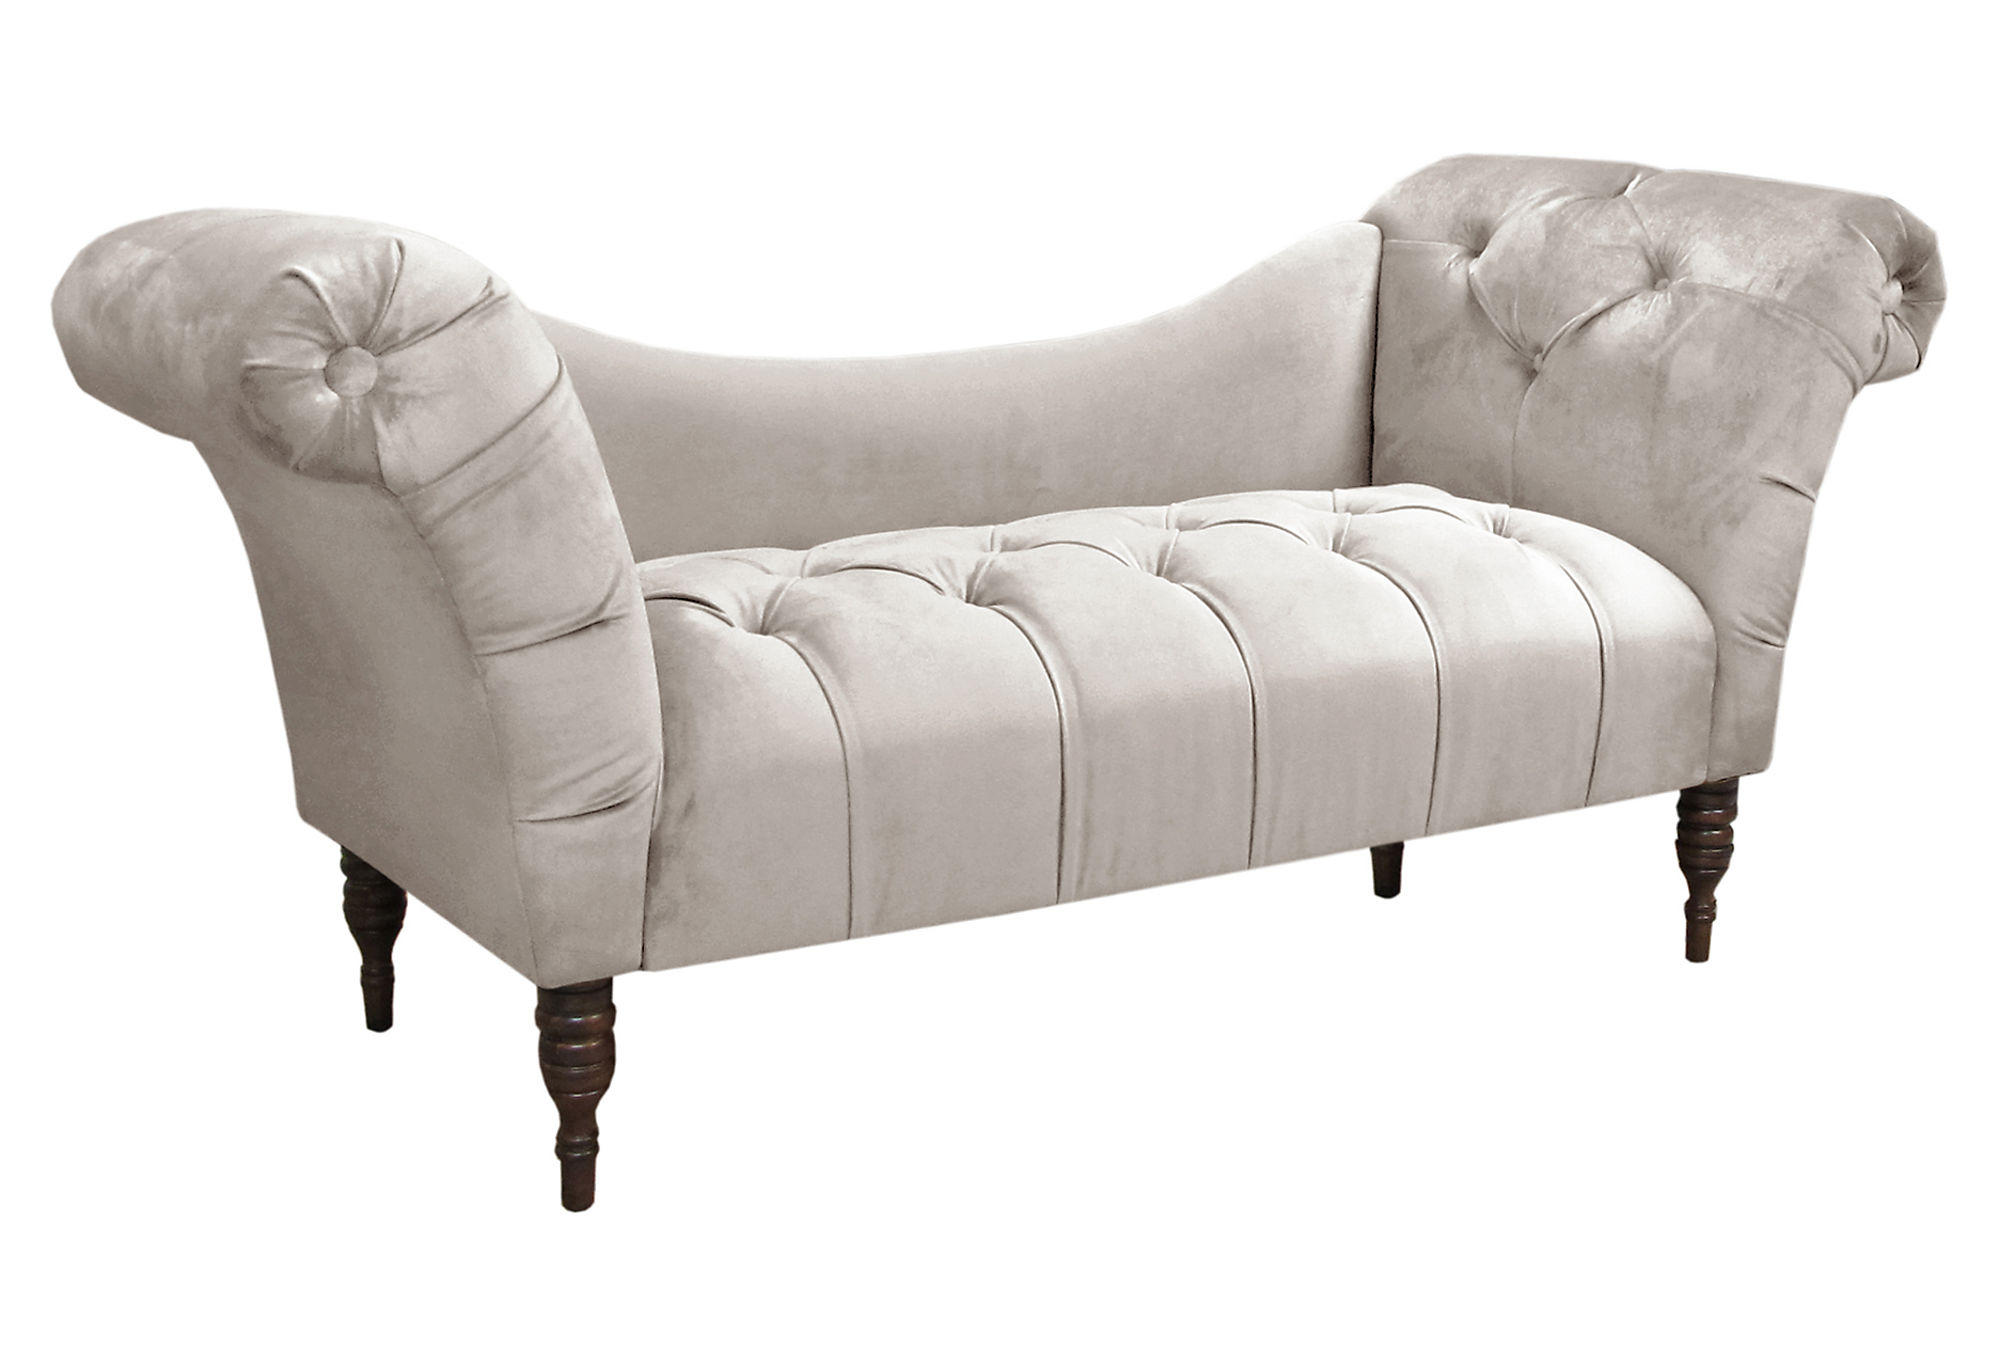 Cameron 74 velvet tufted chaise gray from one kings lane for Button tufted chaise settee velvet